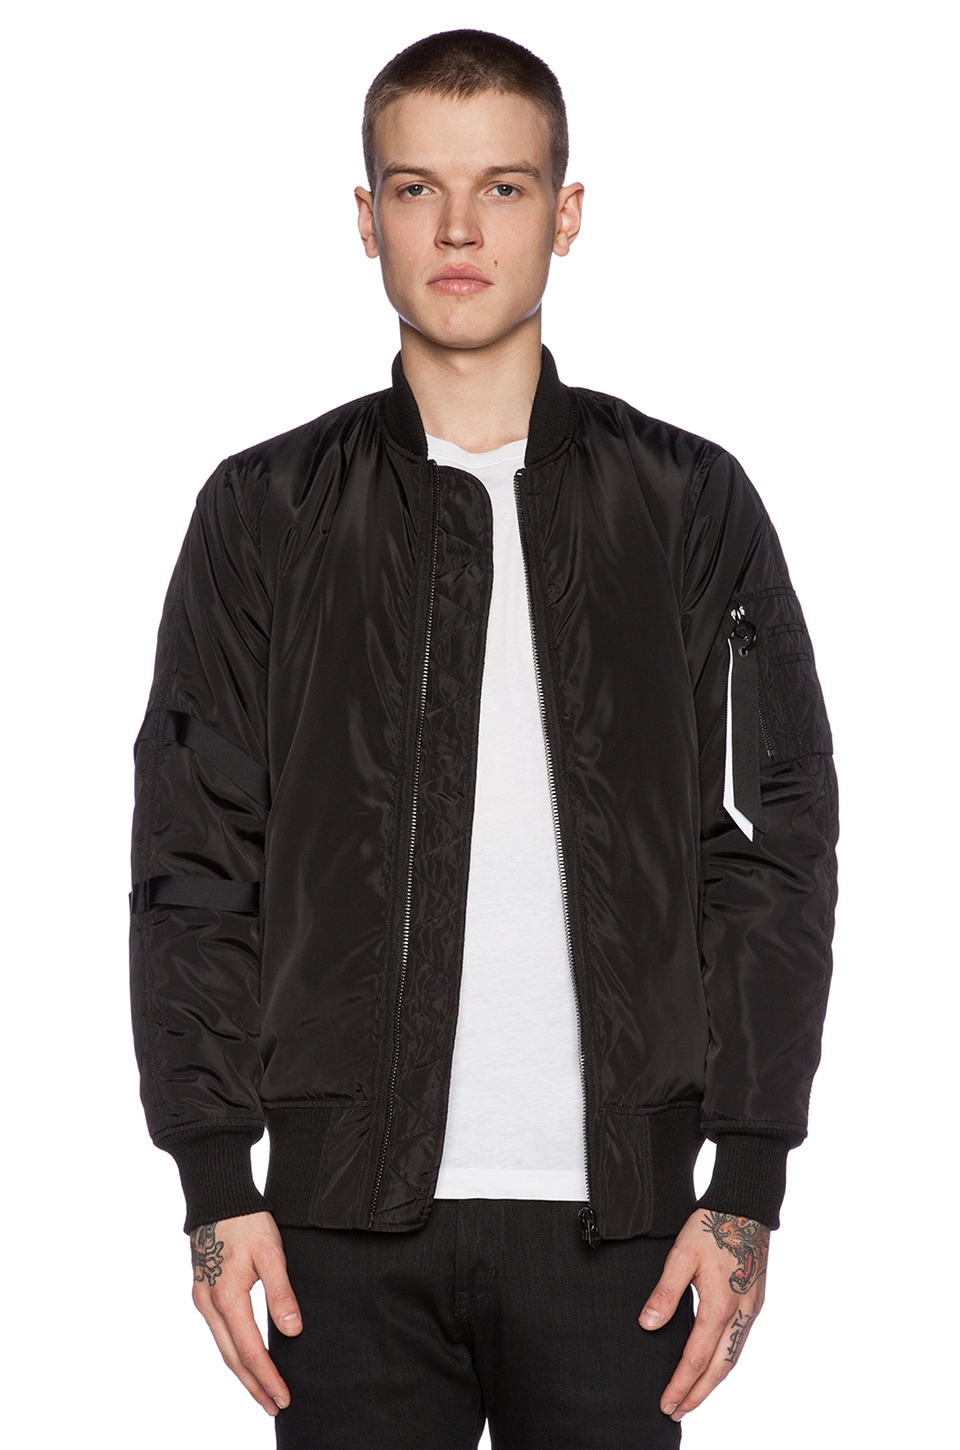 Thin Bomber Jacket Jacketin